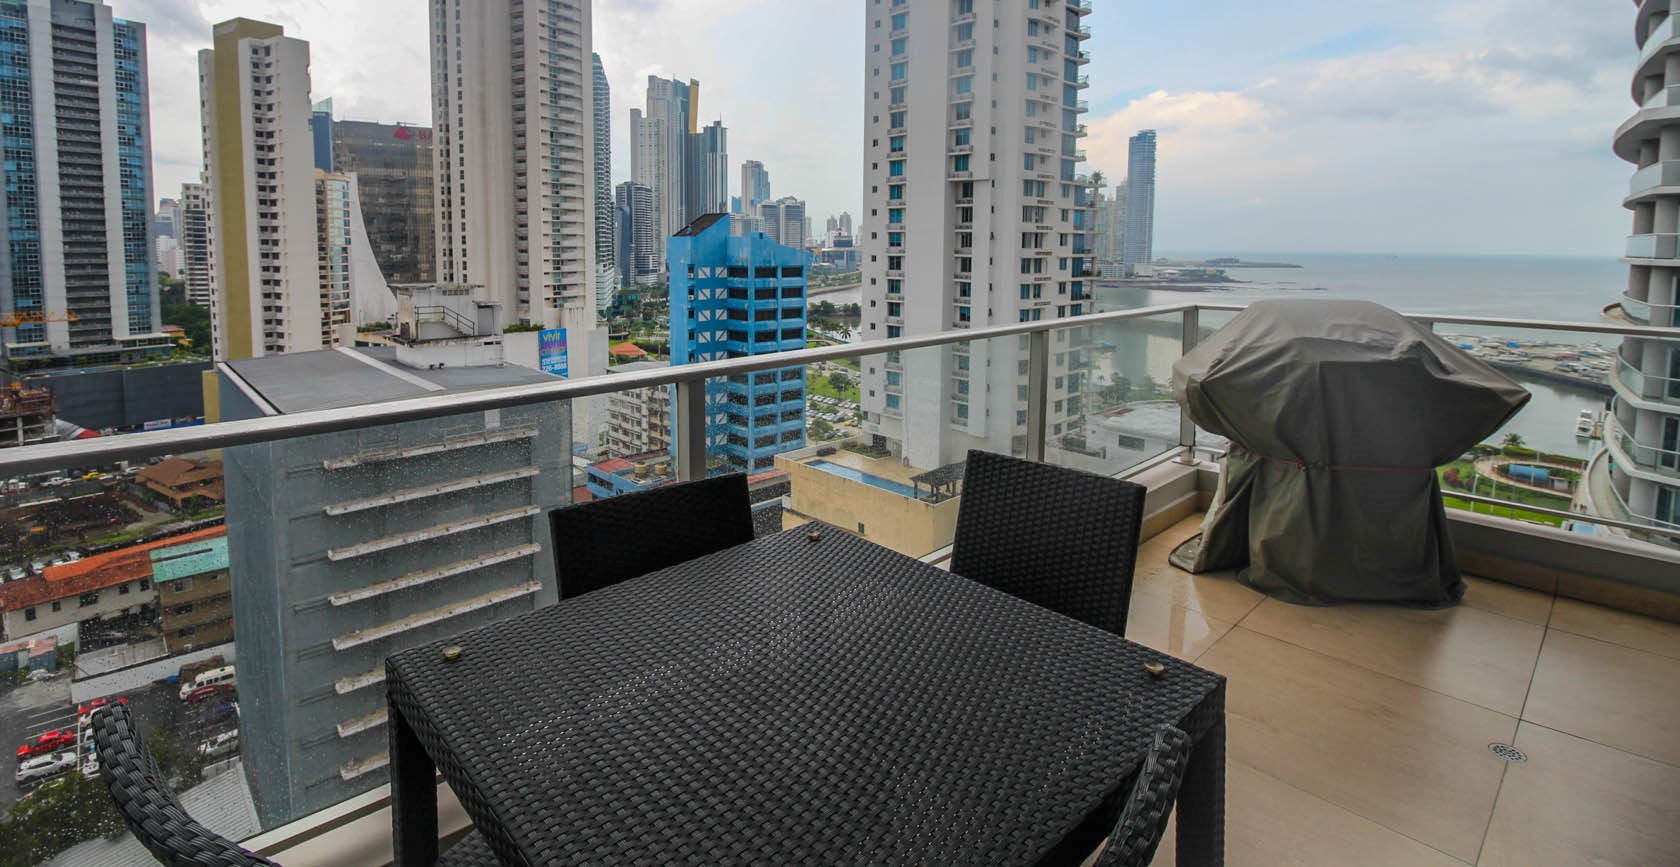 Avenida-Balboa-Panama-property-panamaequityocean-city-views-2nd-line-balboa-ave-3.jpg